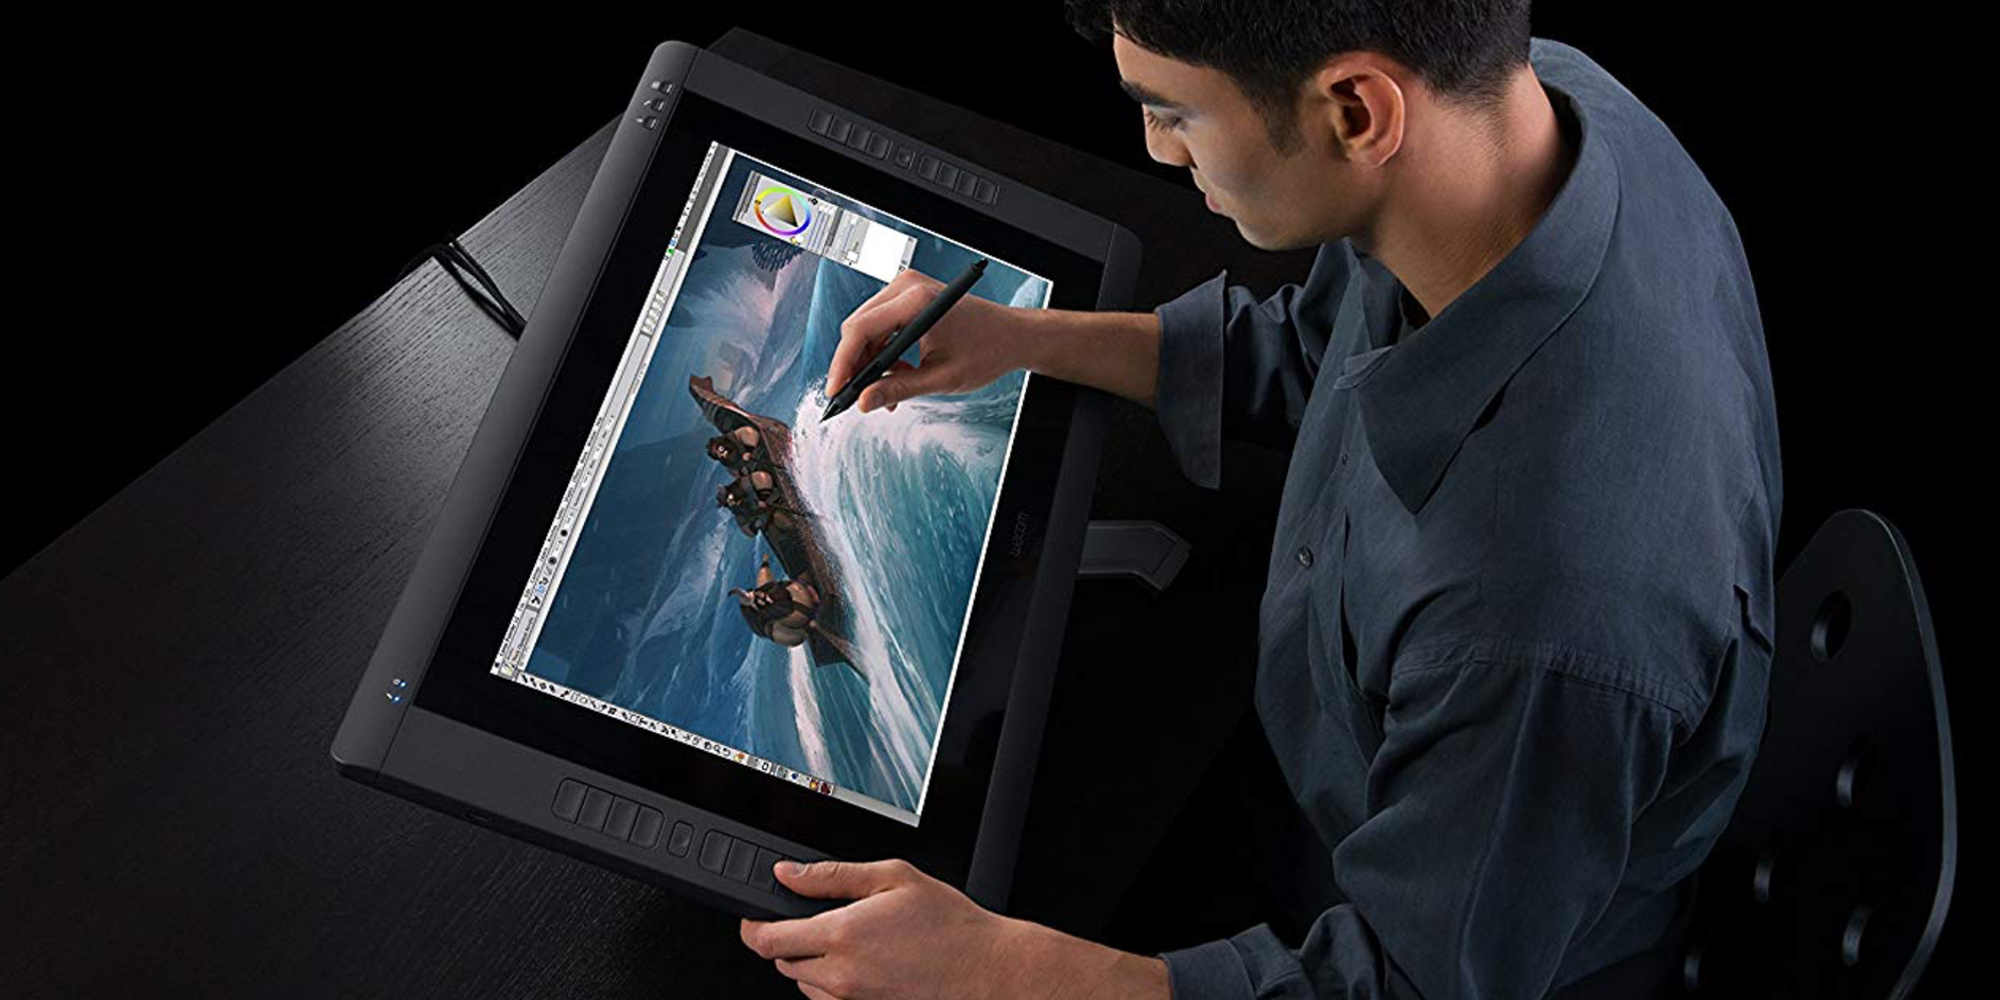 Professional artists and designers can save $200 on Wacon's Cintiq 21-inch Drawing Tablet